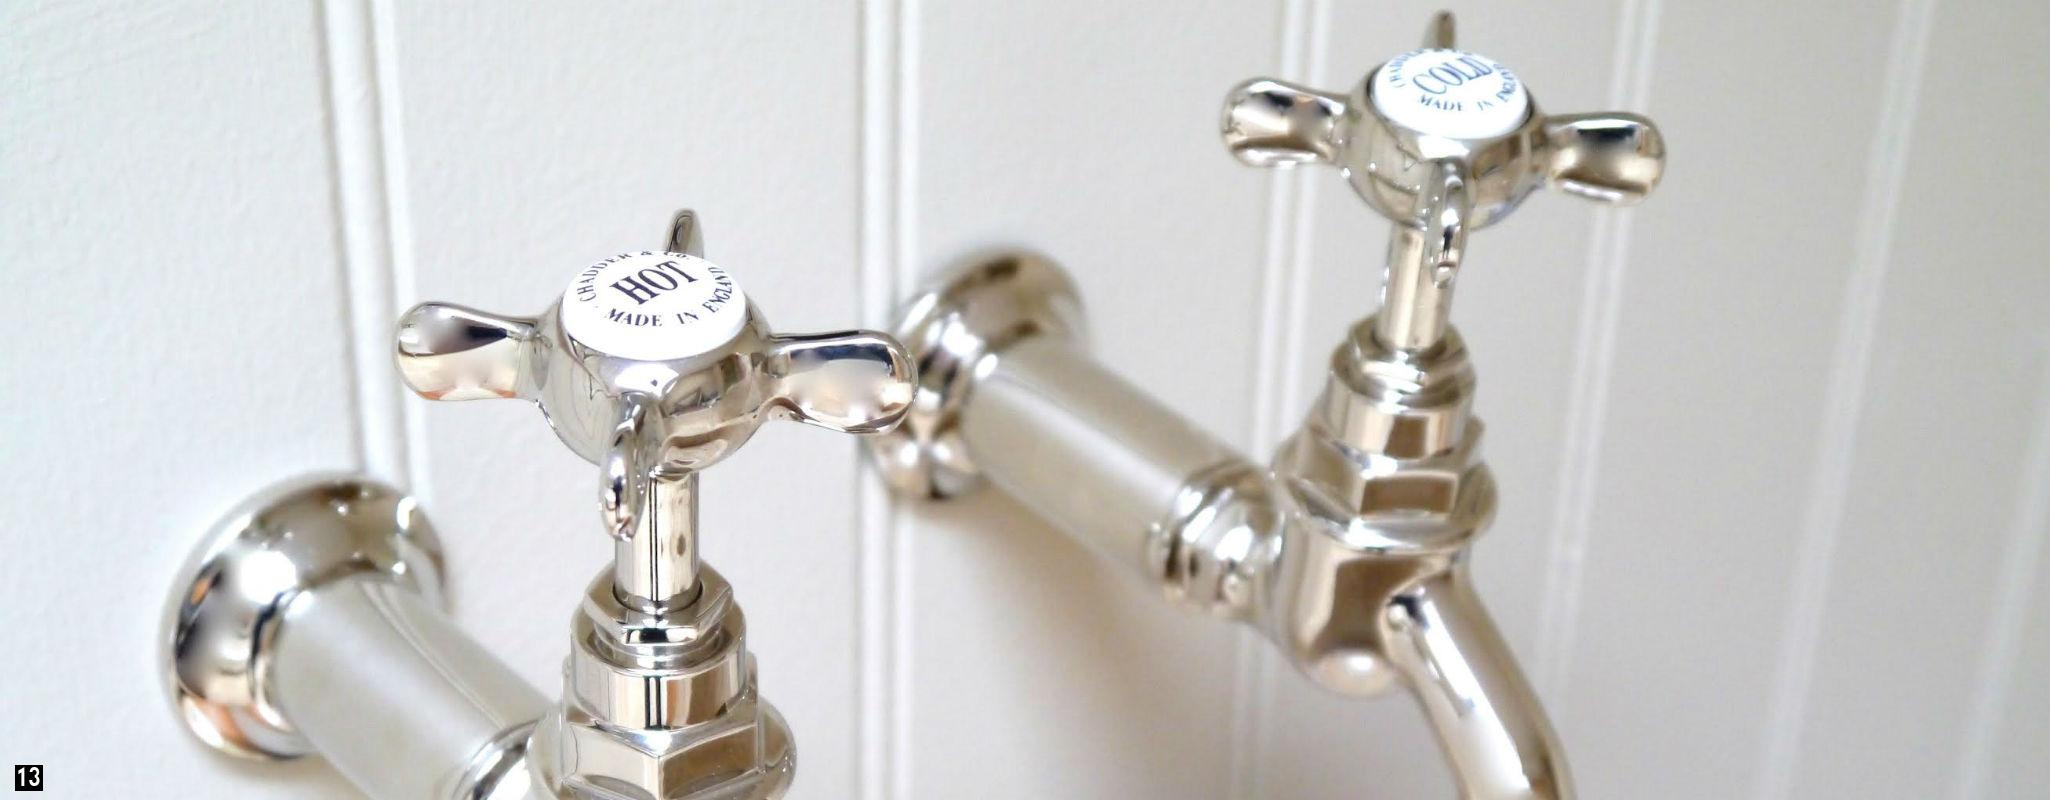 Traditional Taps Australia Bespoke Taps Mixers Product Categories Chadder Co